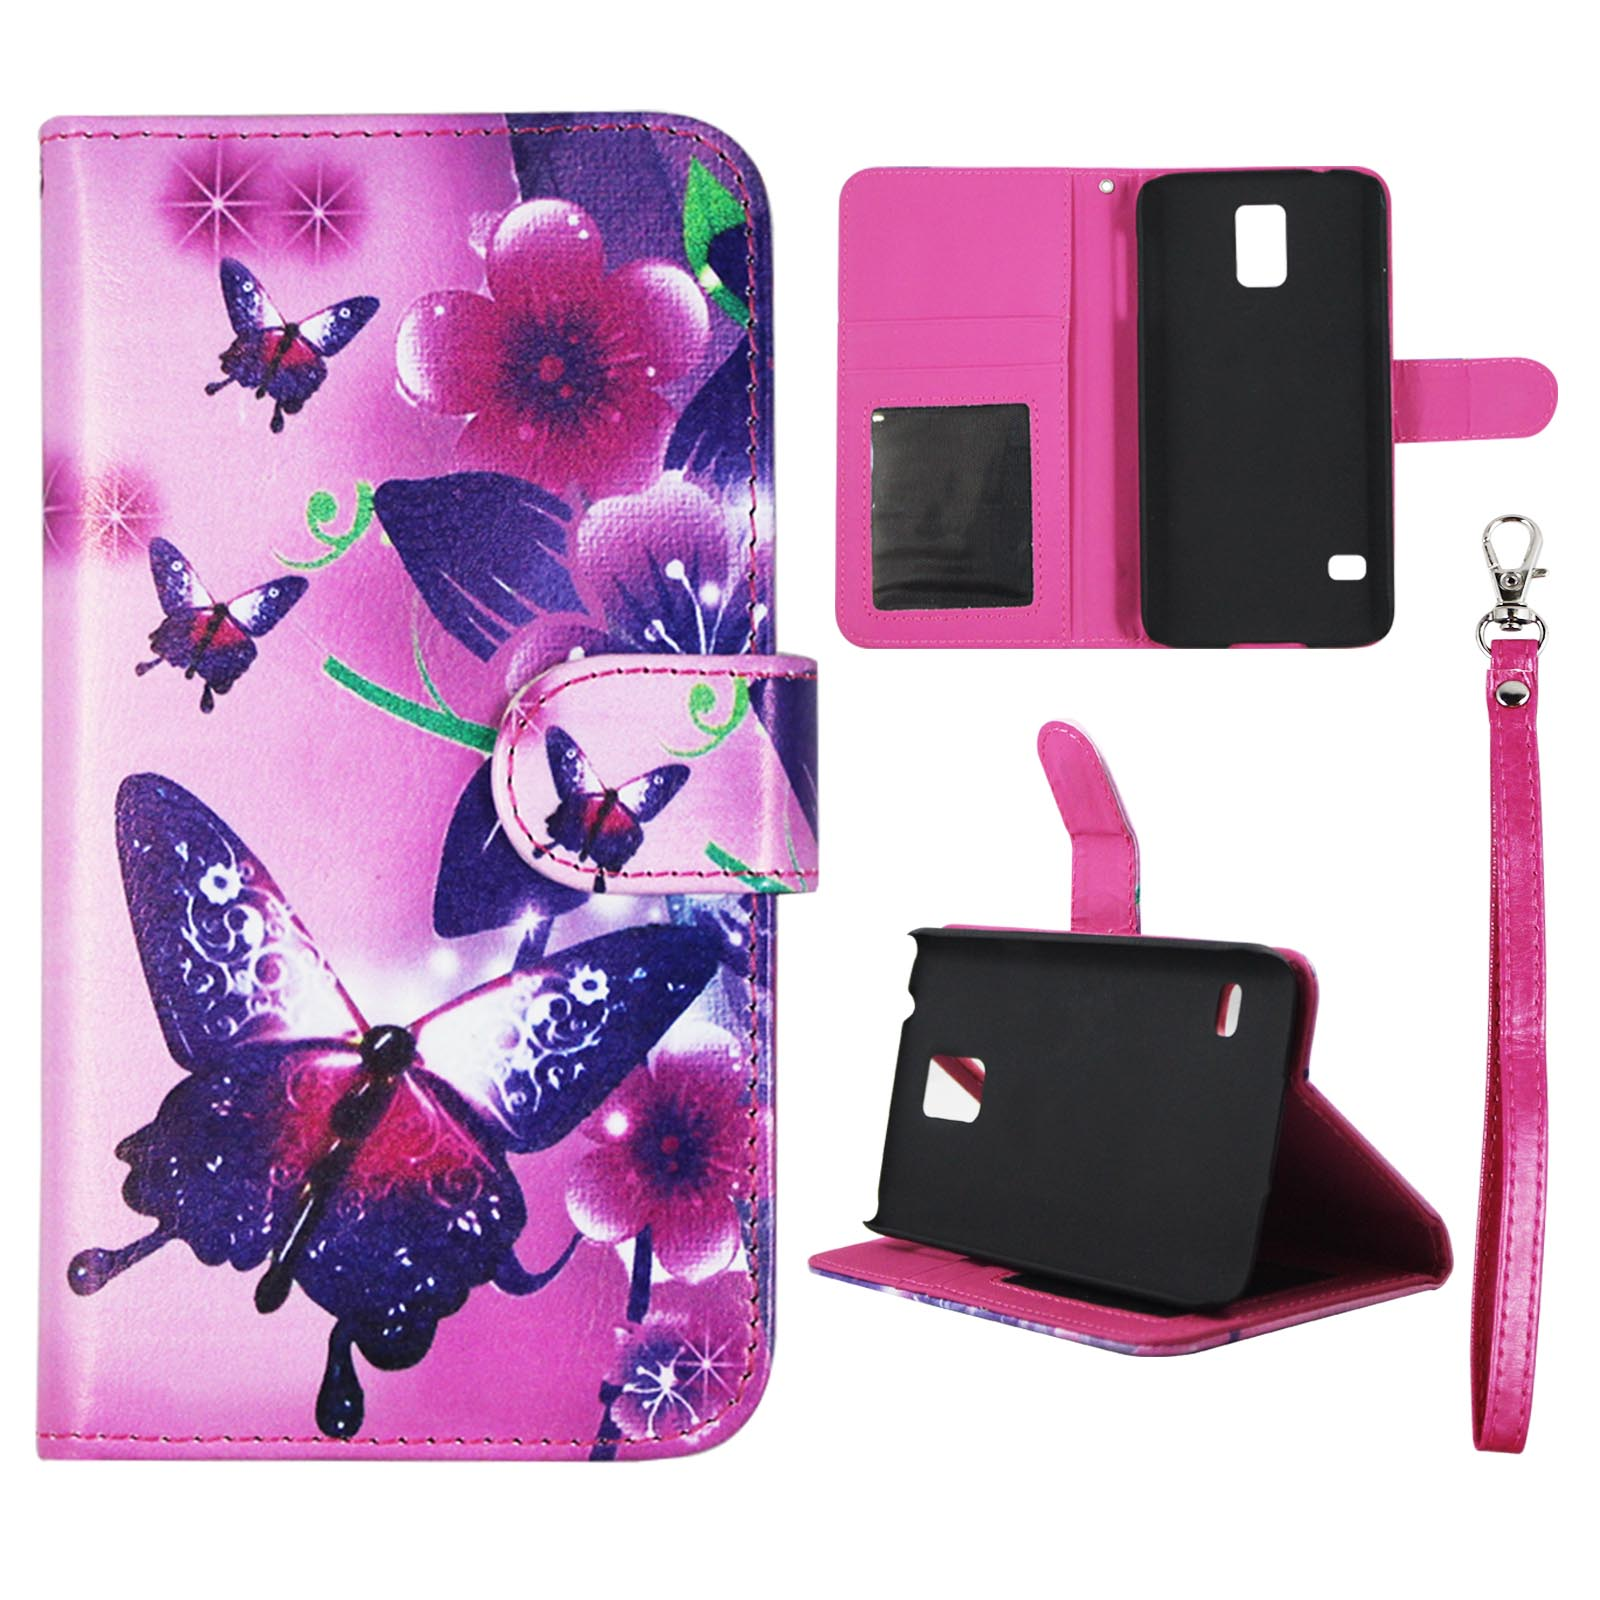 Butterfly Flower Pink Wallet Folio Case for Samsung Galaxy S5 V i9600 Fashion Flip PU Leather Cover Card Slots & Stand